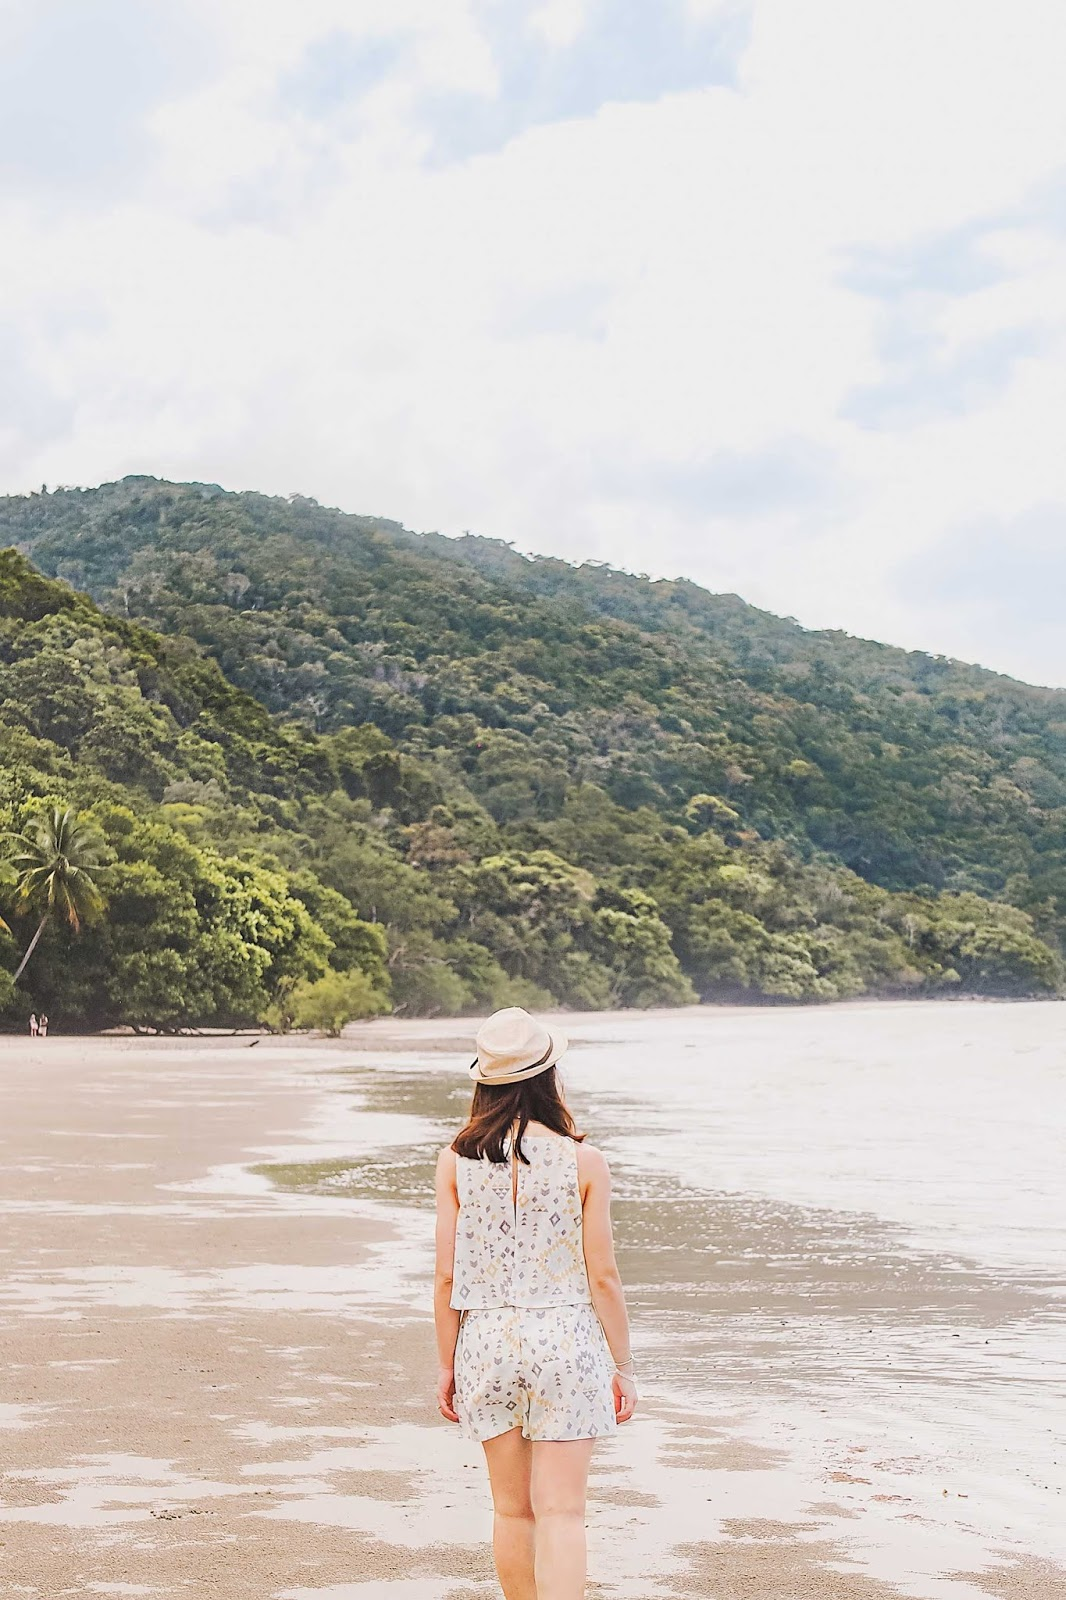 Traveling Around Australia in a Short Time - Cape Tribulation, Australia